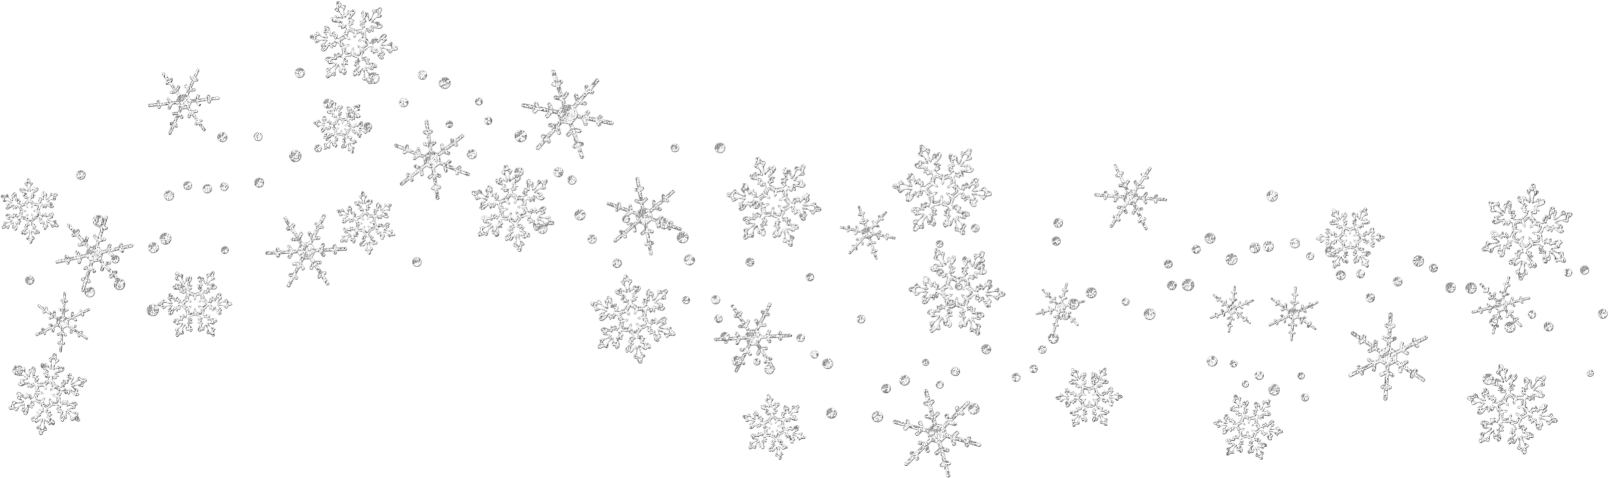 Winter clipart transparent background Clipart Snowflakes Snowflakes background free